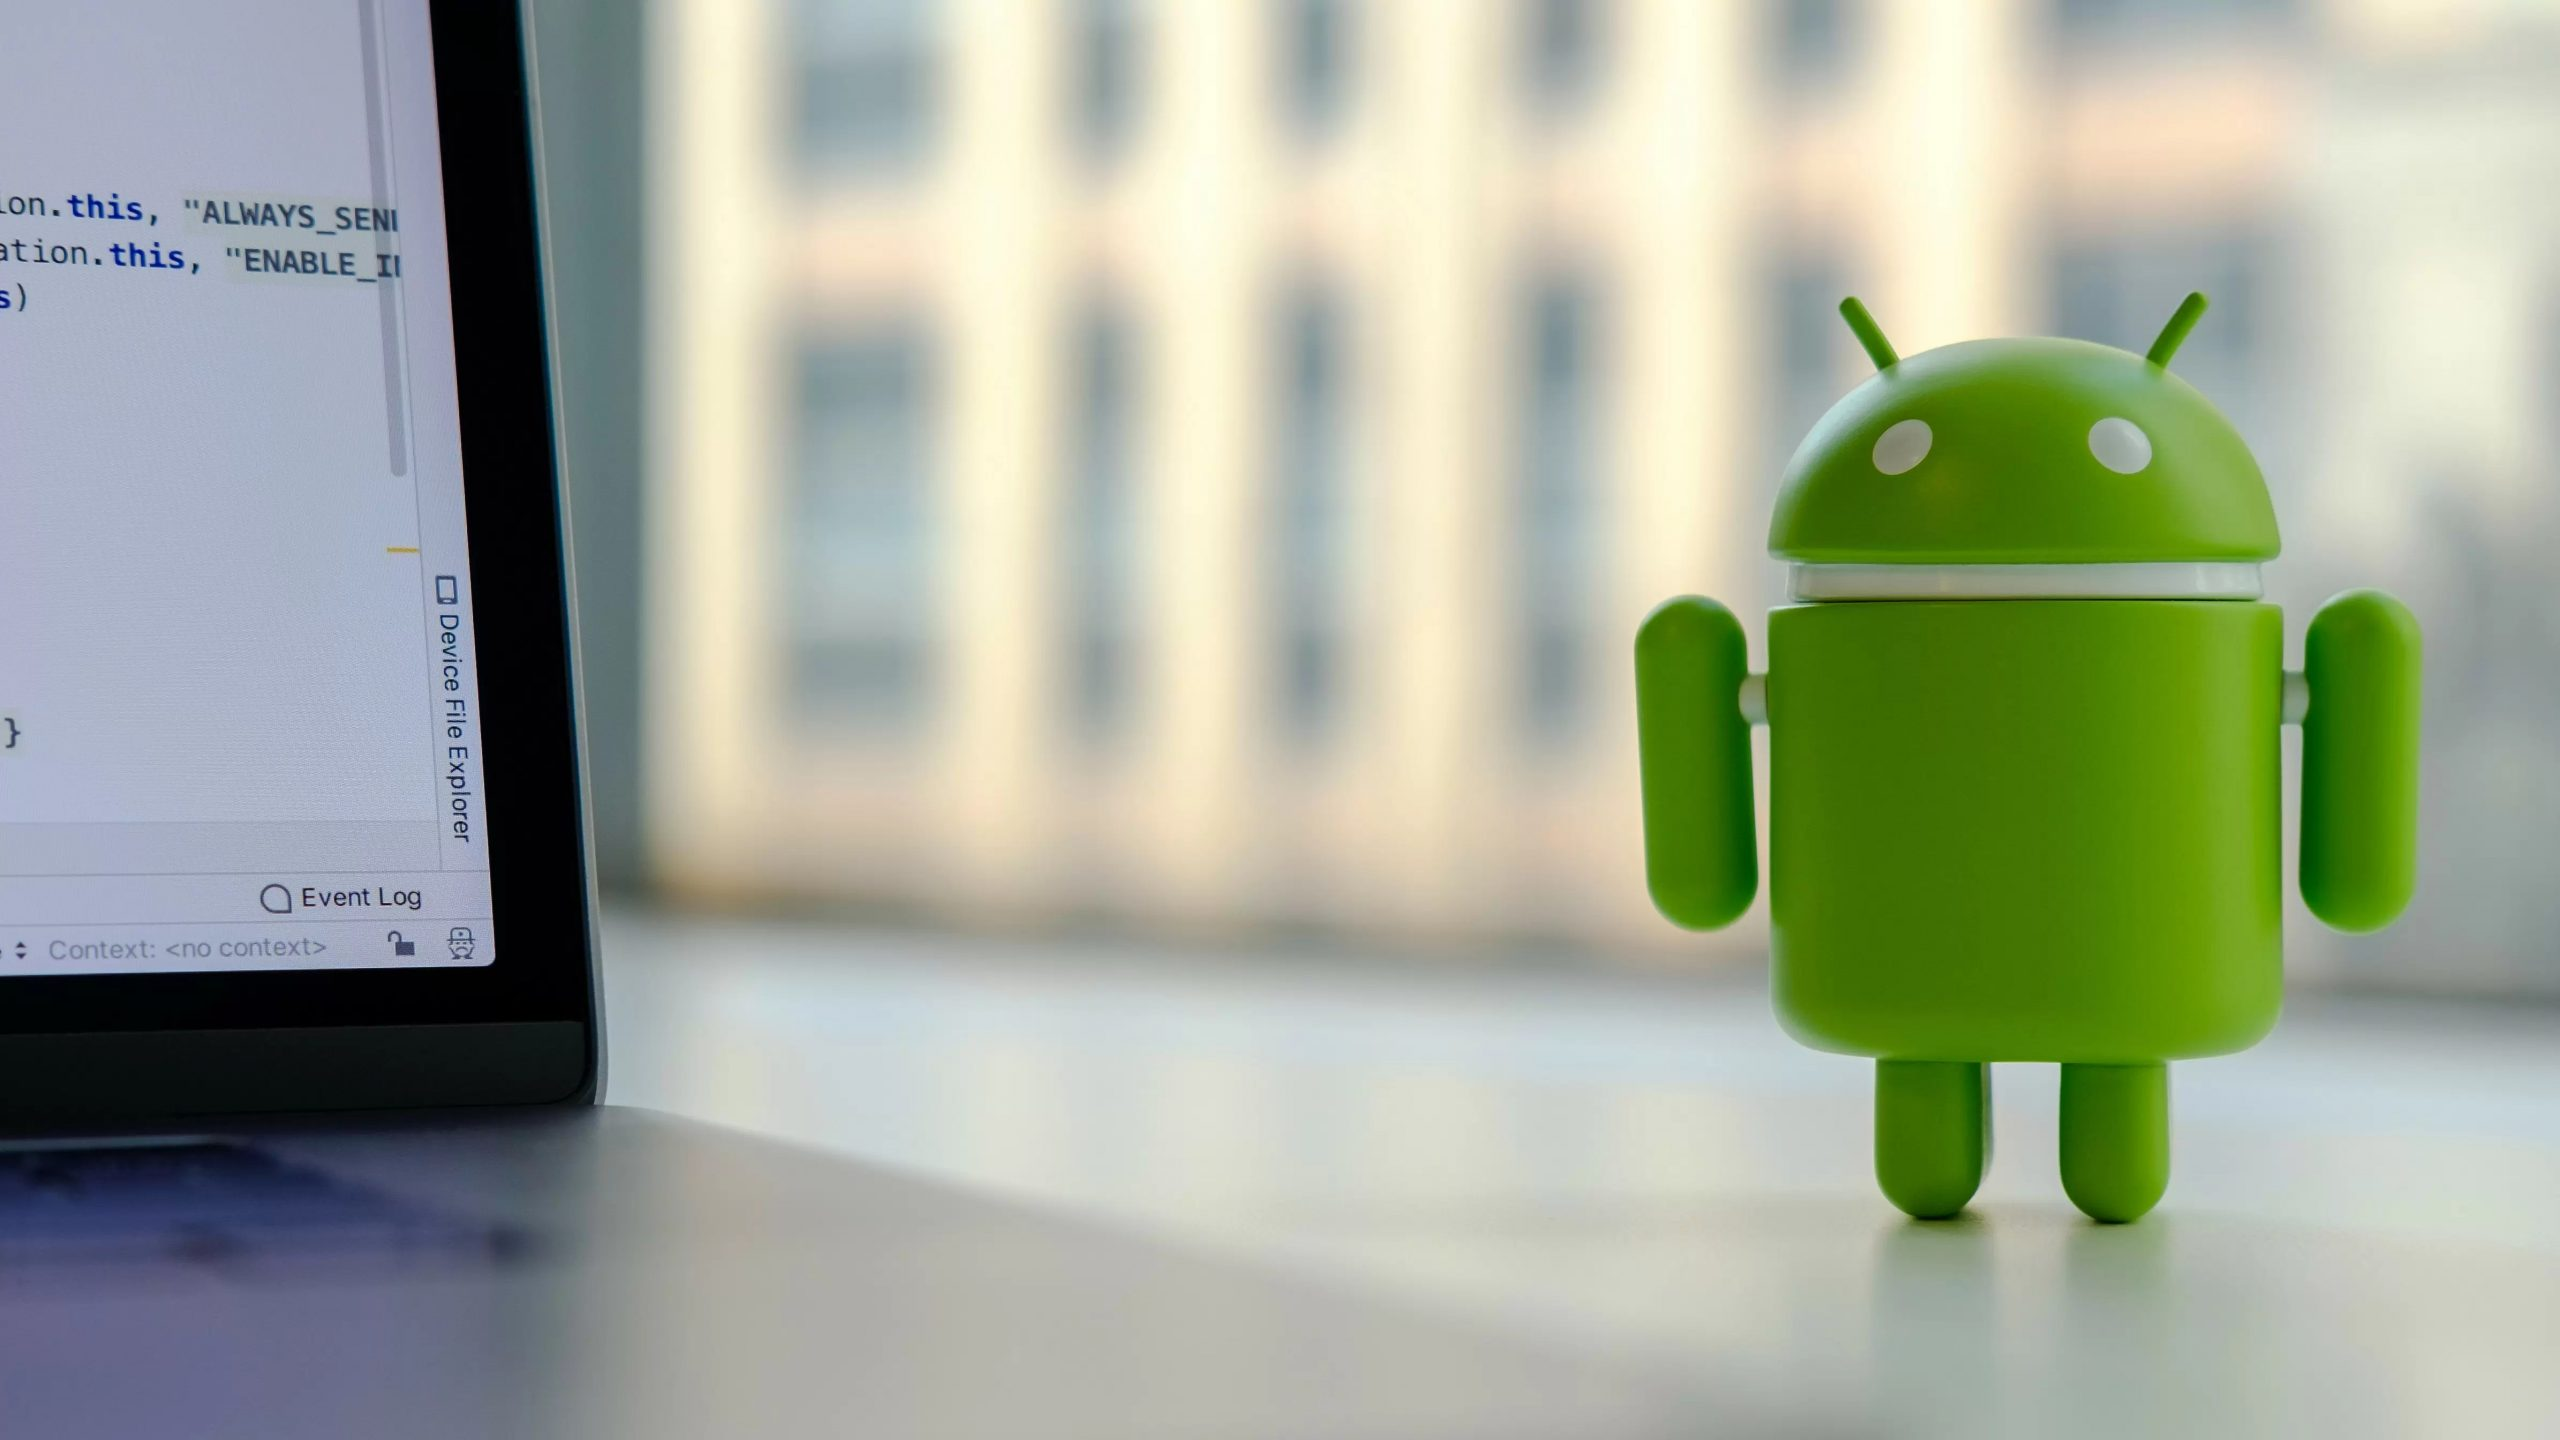 Users of these Android devices will be denied Google services as of September 27